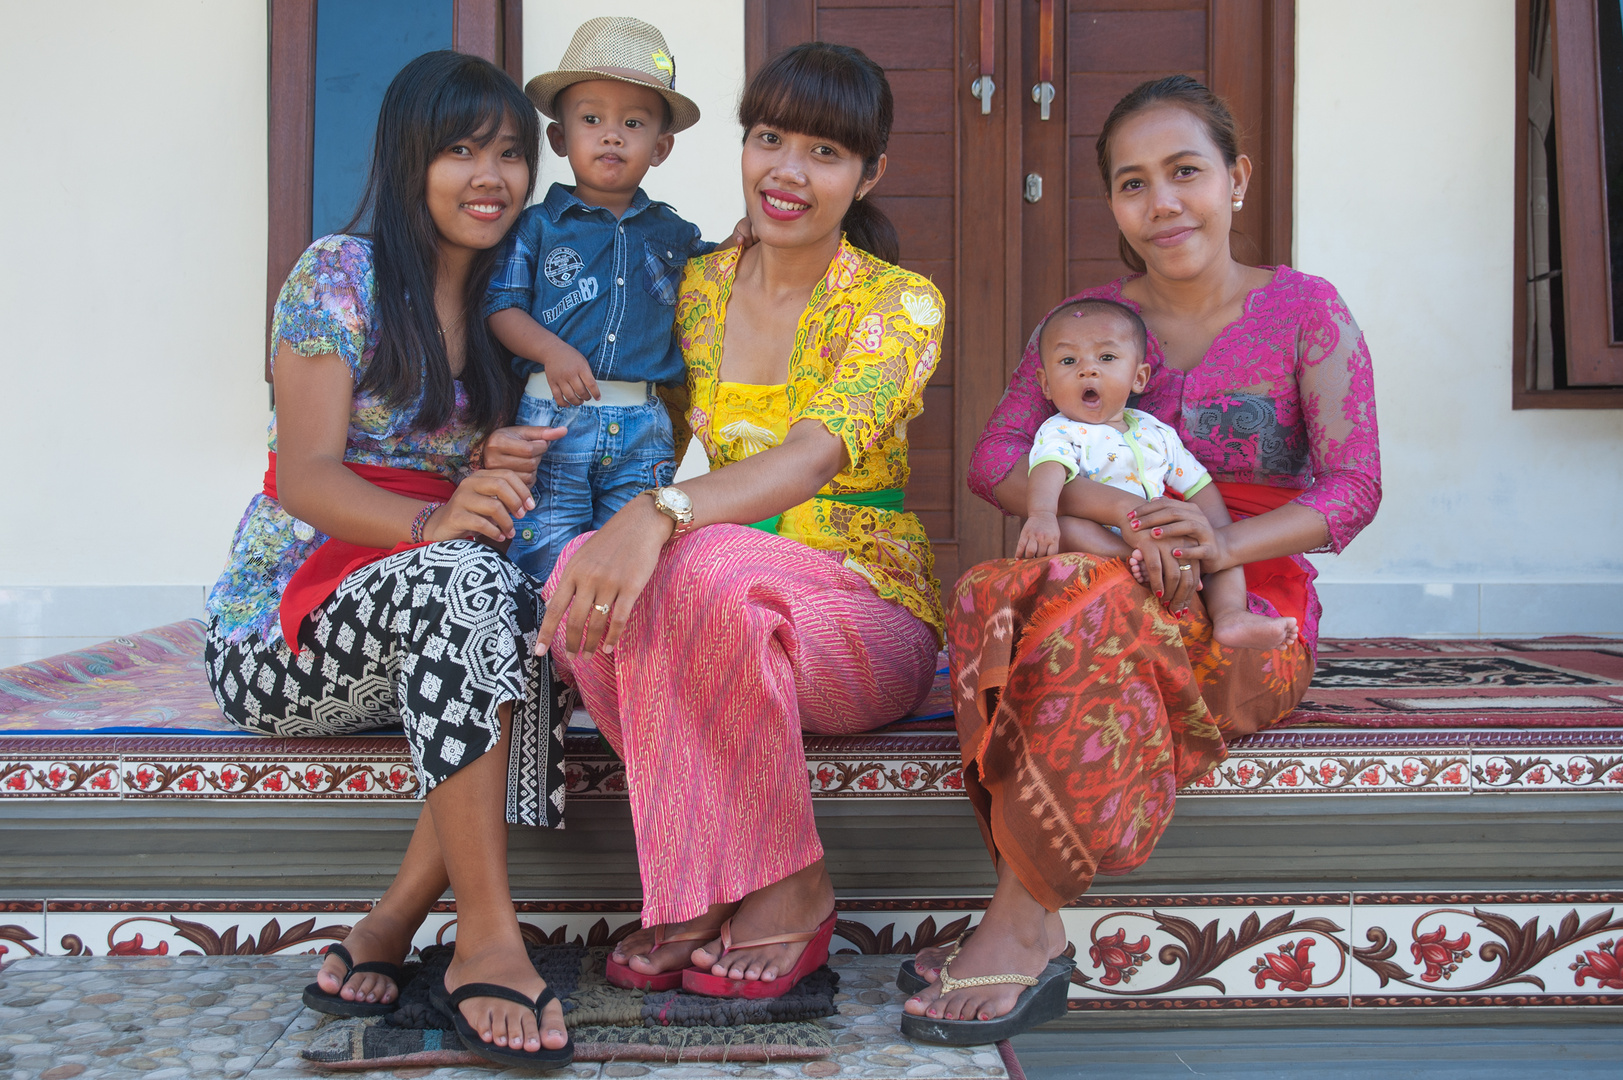 Relatives in Balinese family